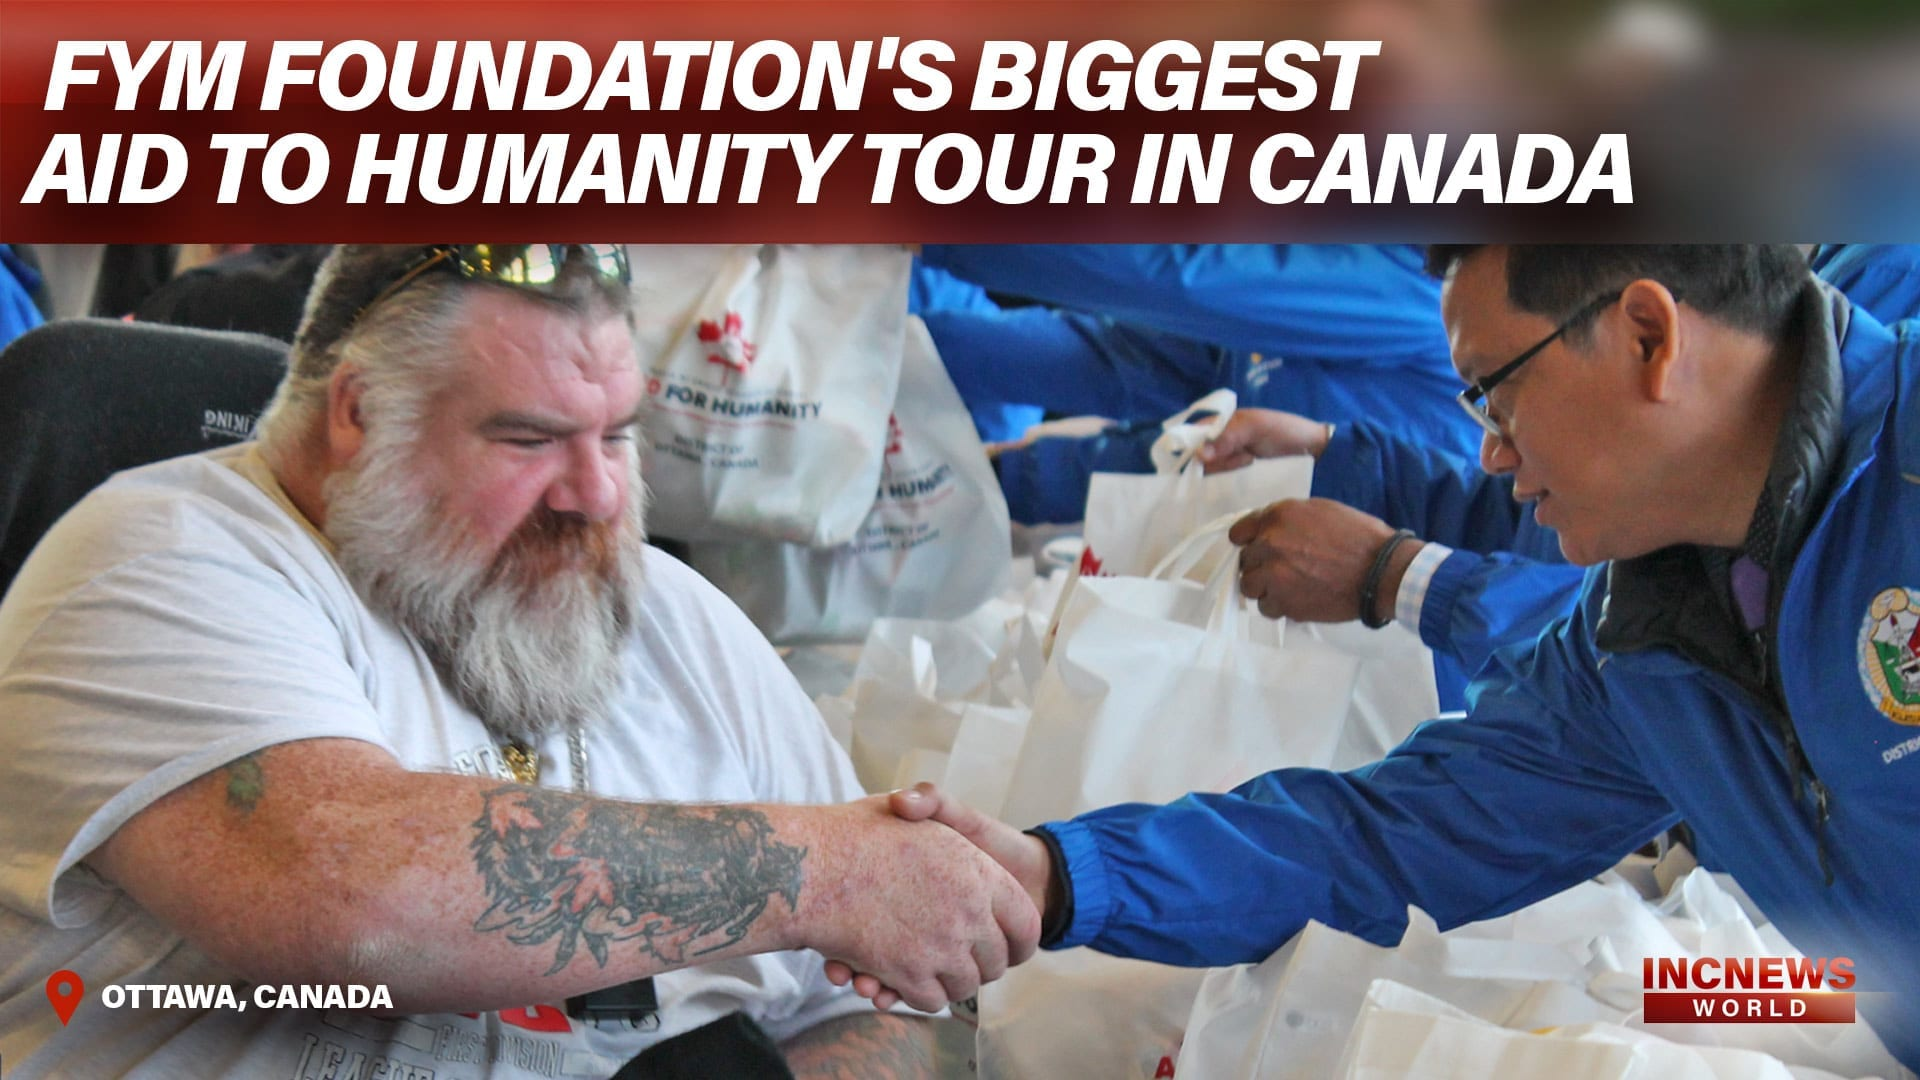 FYM Foundation's Biggest Aid To Humanity Tour in Canada